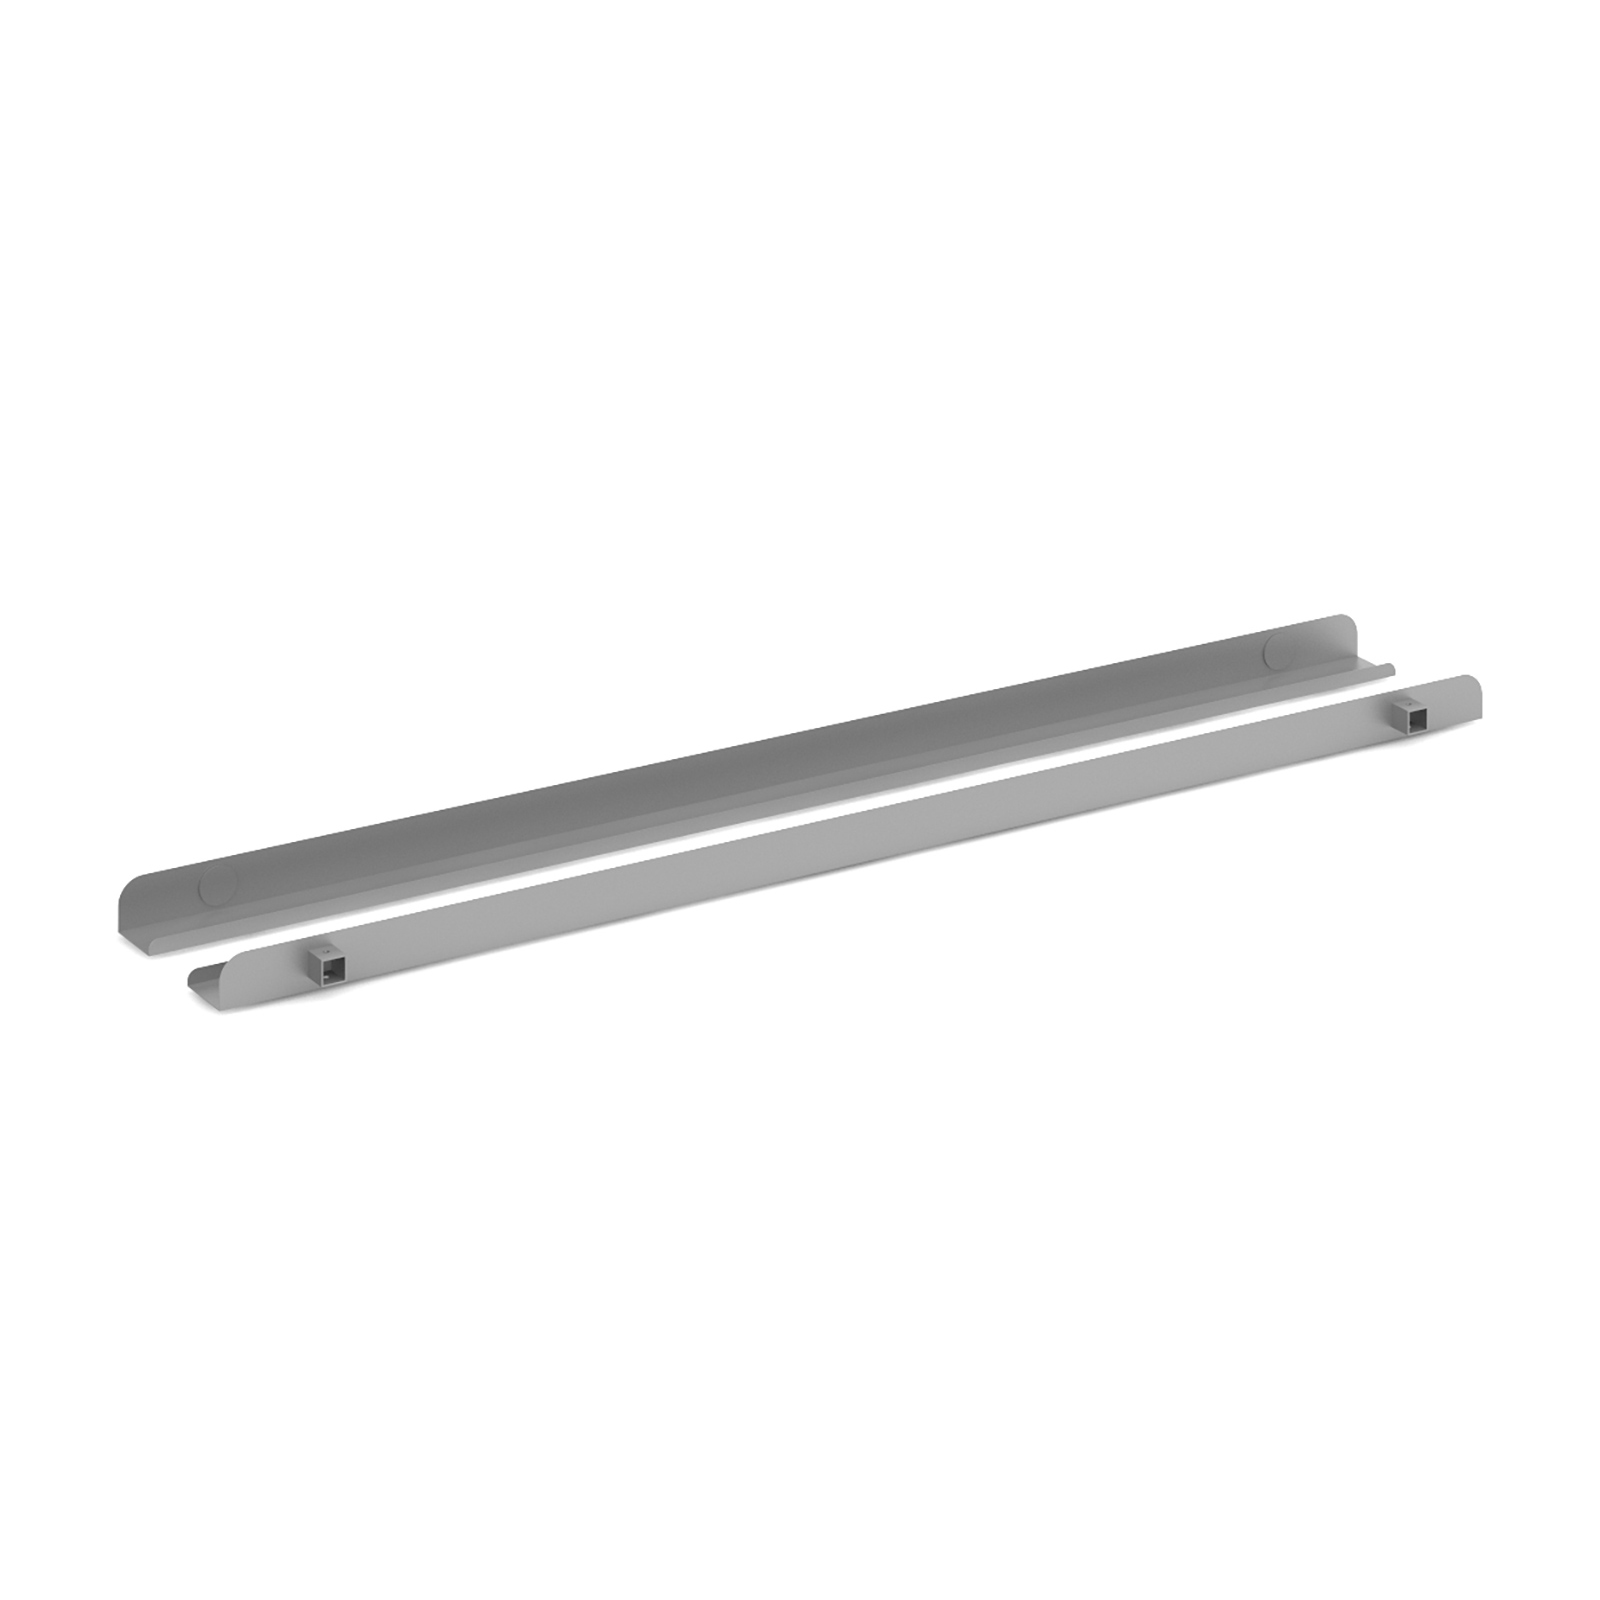 Cable Tidies Connex single cable tray